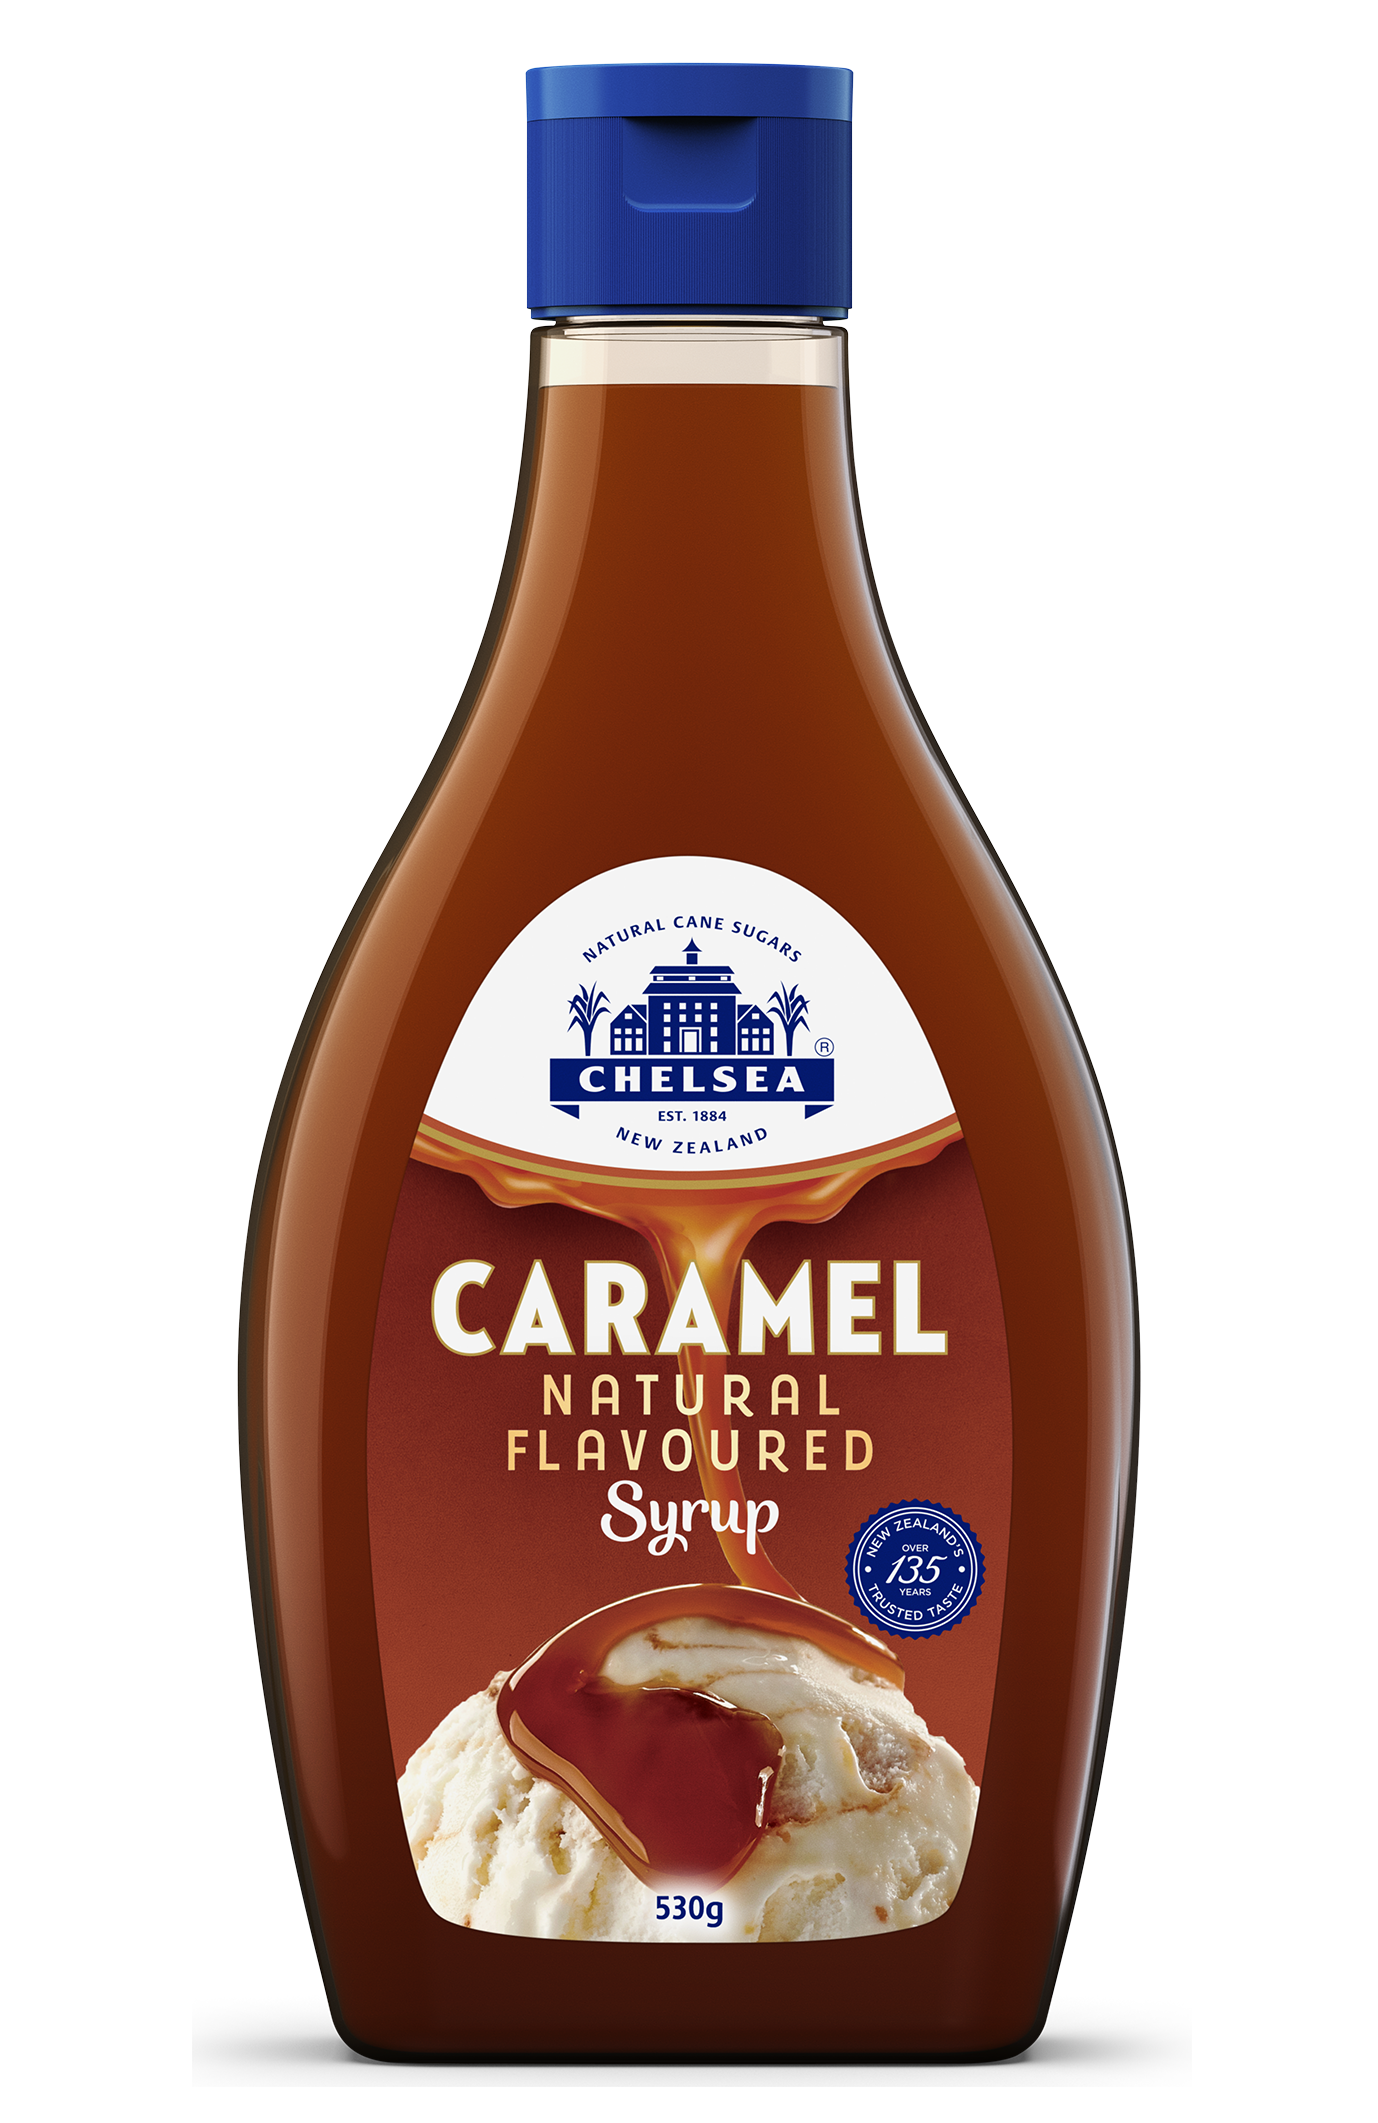 Caramel Natural Flavoured Syrup